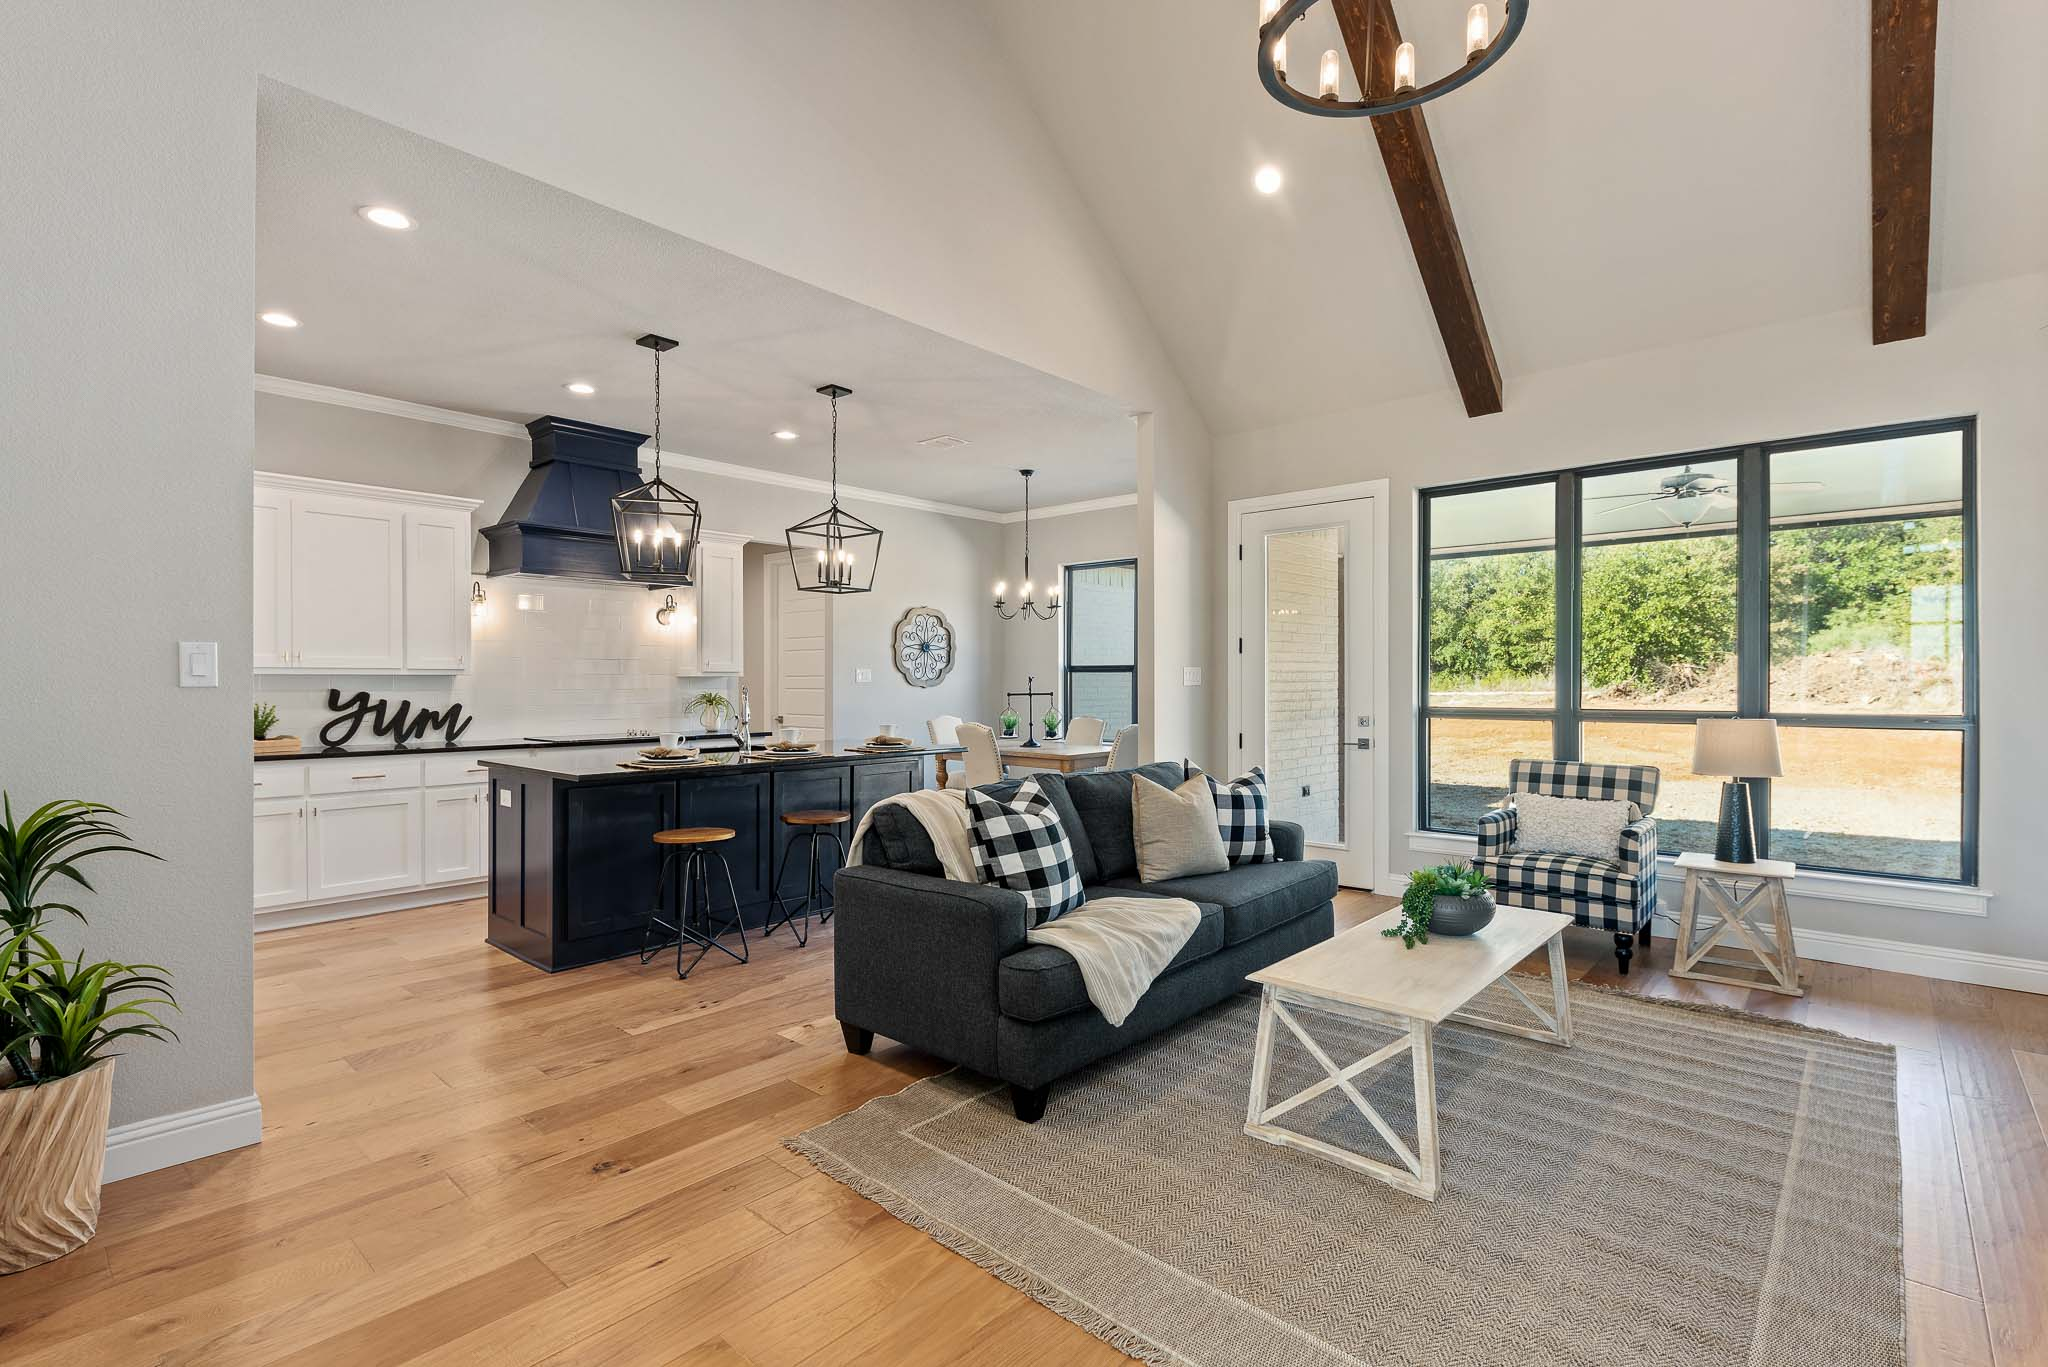 Farm style home living room with high ceiling and wood beams